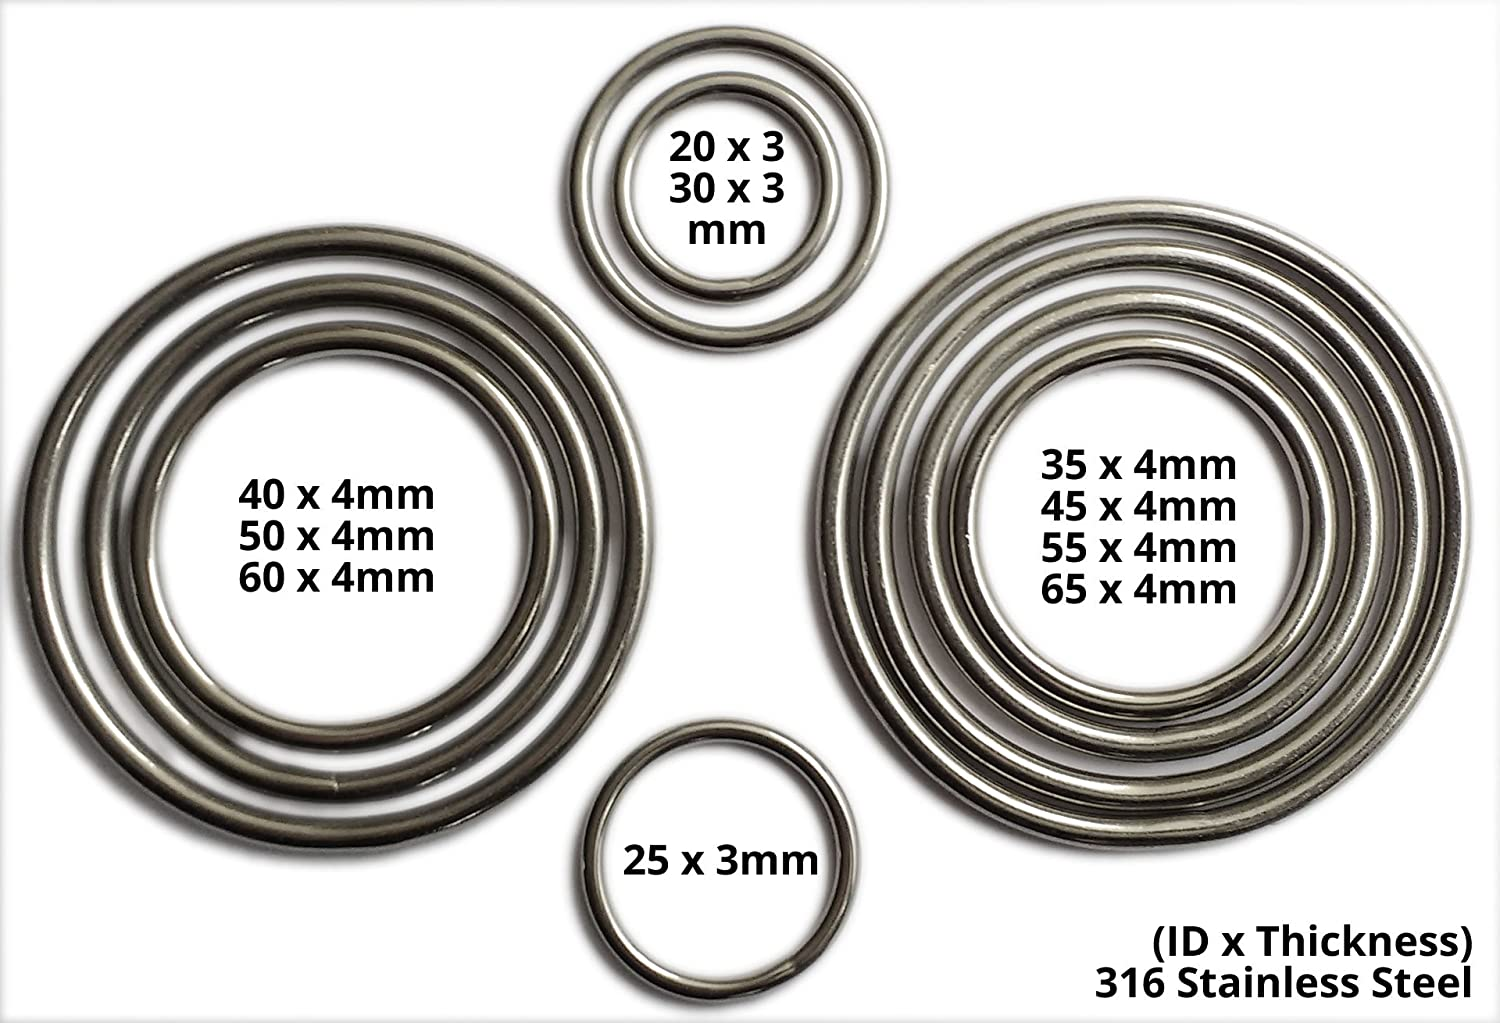 Inoxia Welded Rings, 316 Stainless Steel - Size: 55mm, Pack quantity: 50 Inoxia Ltd